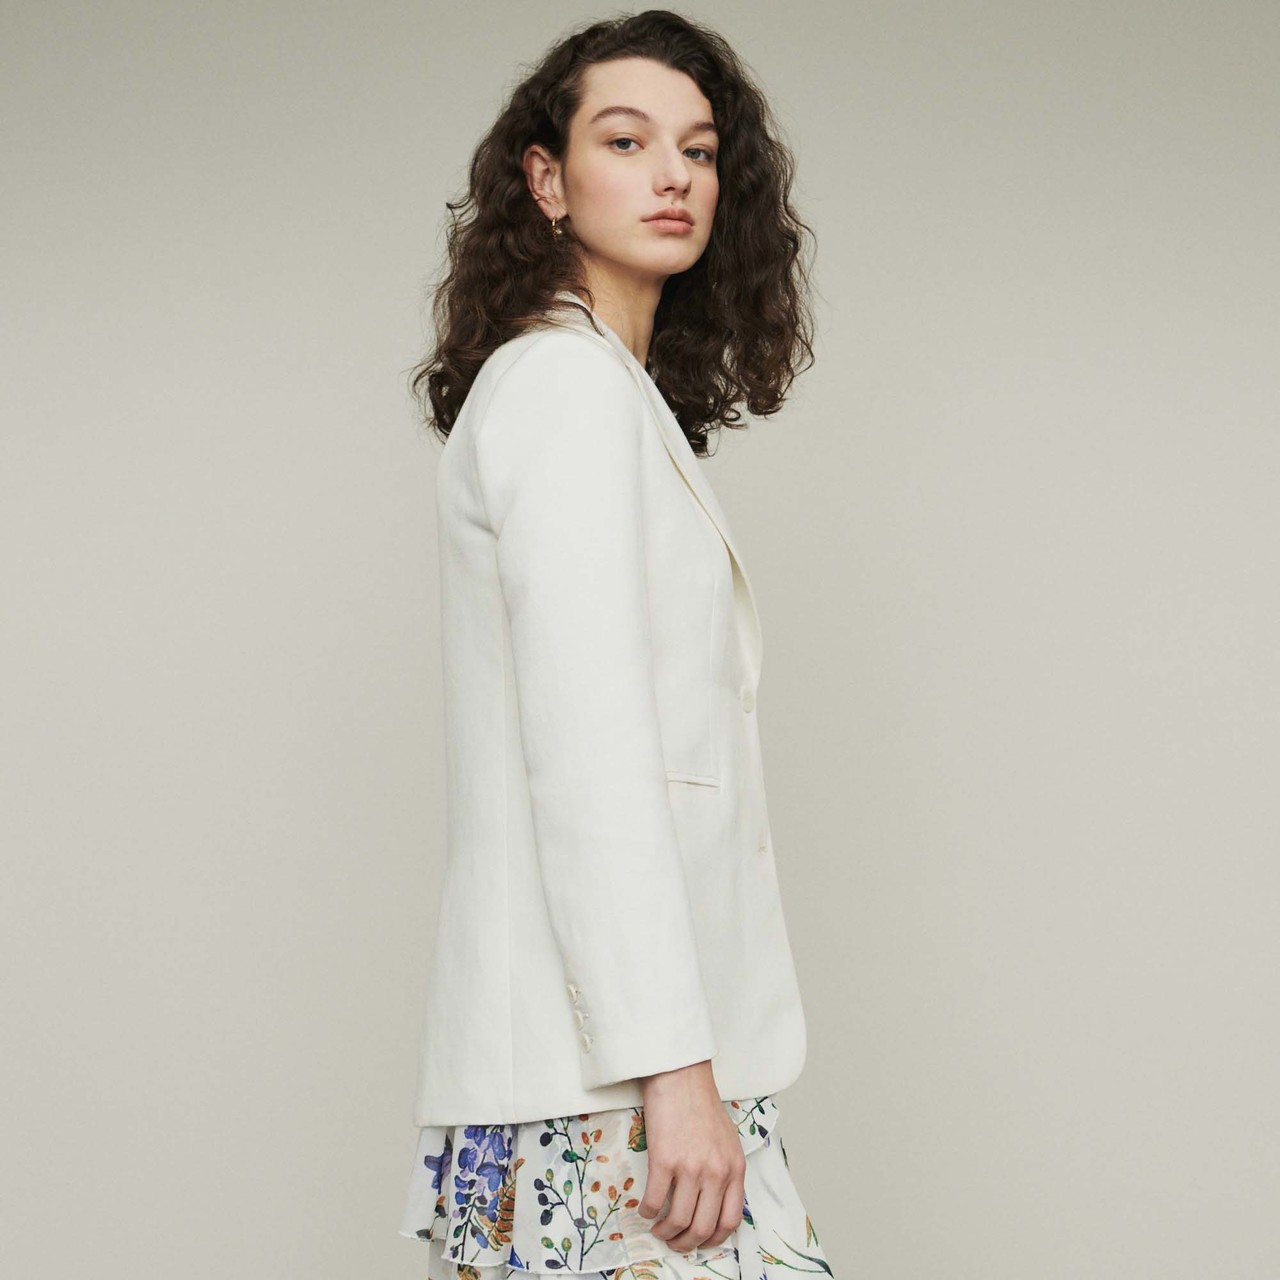 Suit Jacket In Wool Blend - White